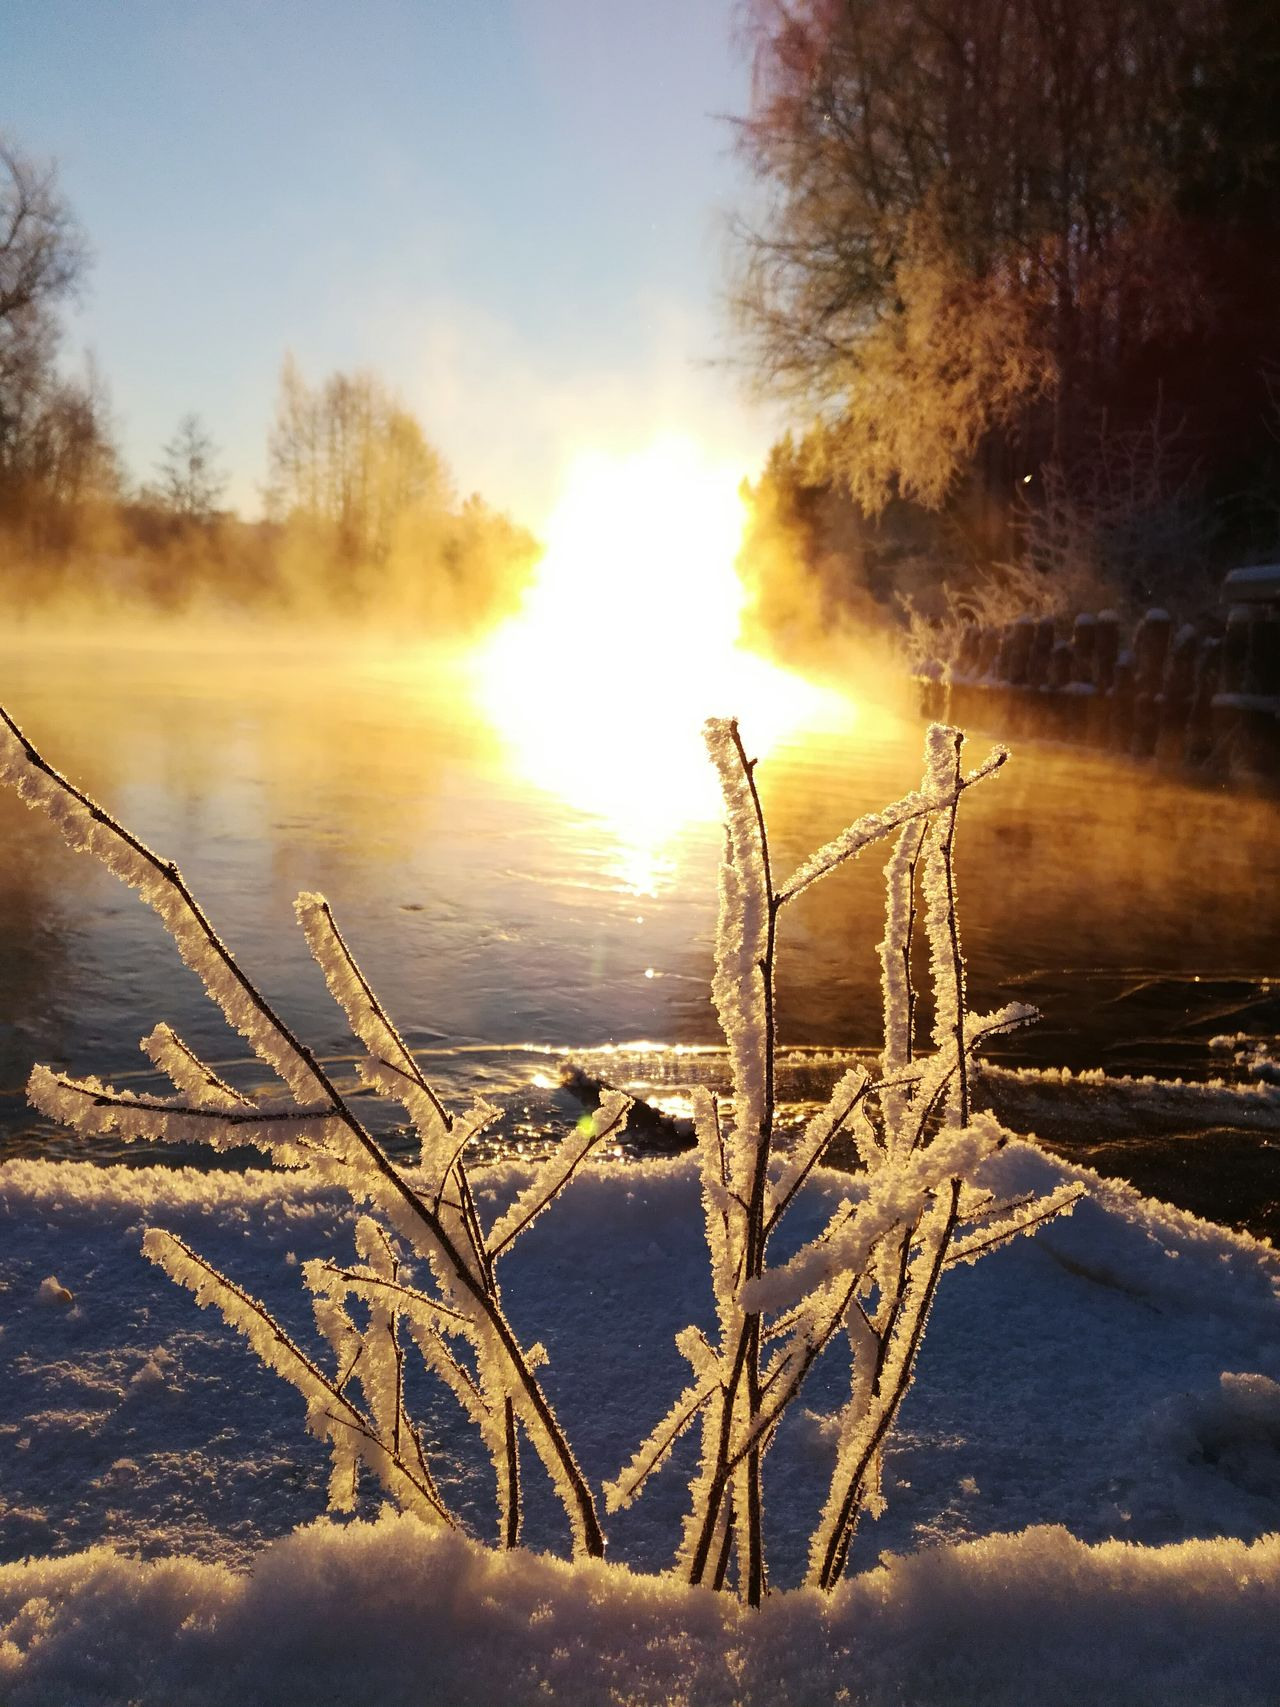 Cold Temperature Winter Landscape Snow Nature Sunrise Beauty In Nature Frozen Tree Sunlight No People Sun Outdoors Ice Water Sky Morning Early Morning Korkeakoski Finland Steam Selective Focus Light And Shadow Branches Kotka, Finland